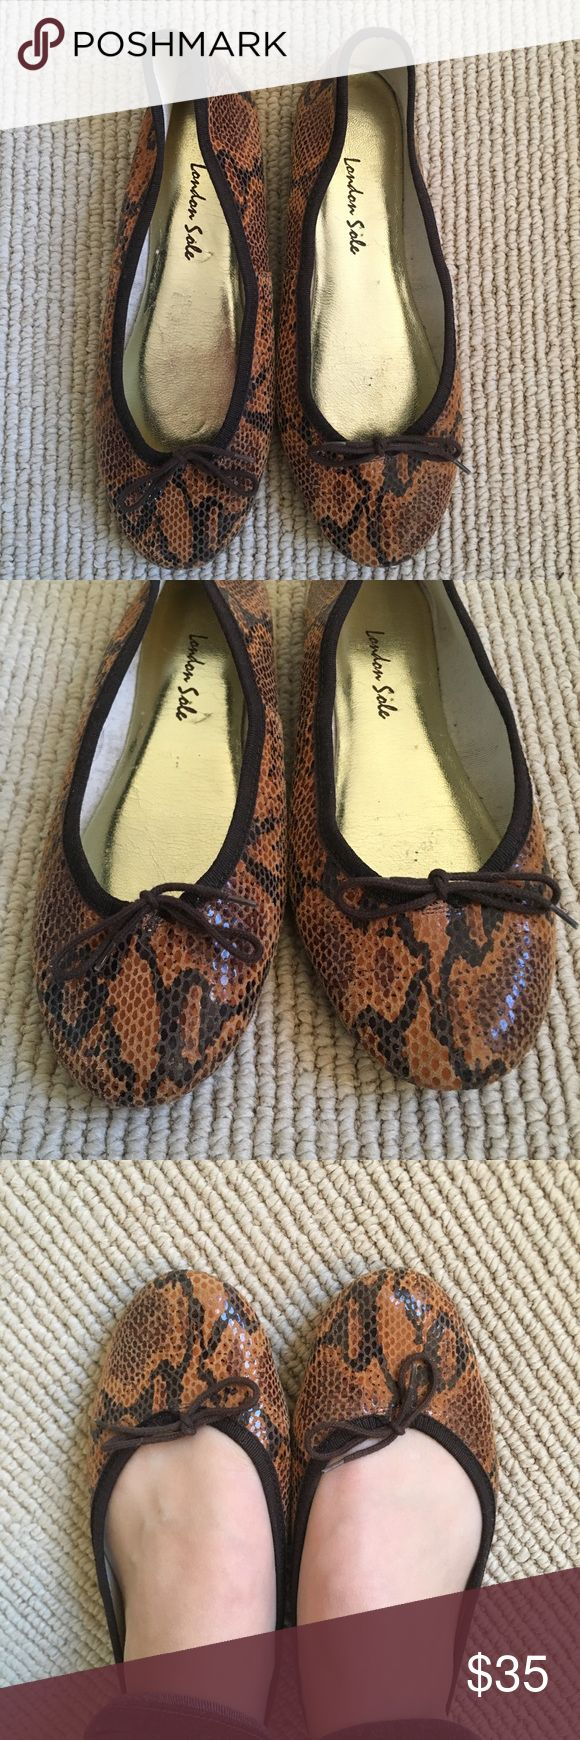 London Sole Animal Print Ballet Flats Cute animal print London Sole ballet flats are the perfect neutral. Very comfortable and in very good used condition. London Sole Shoes Flats & Loafers